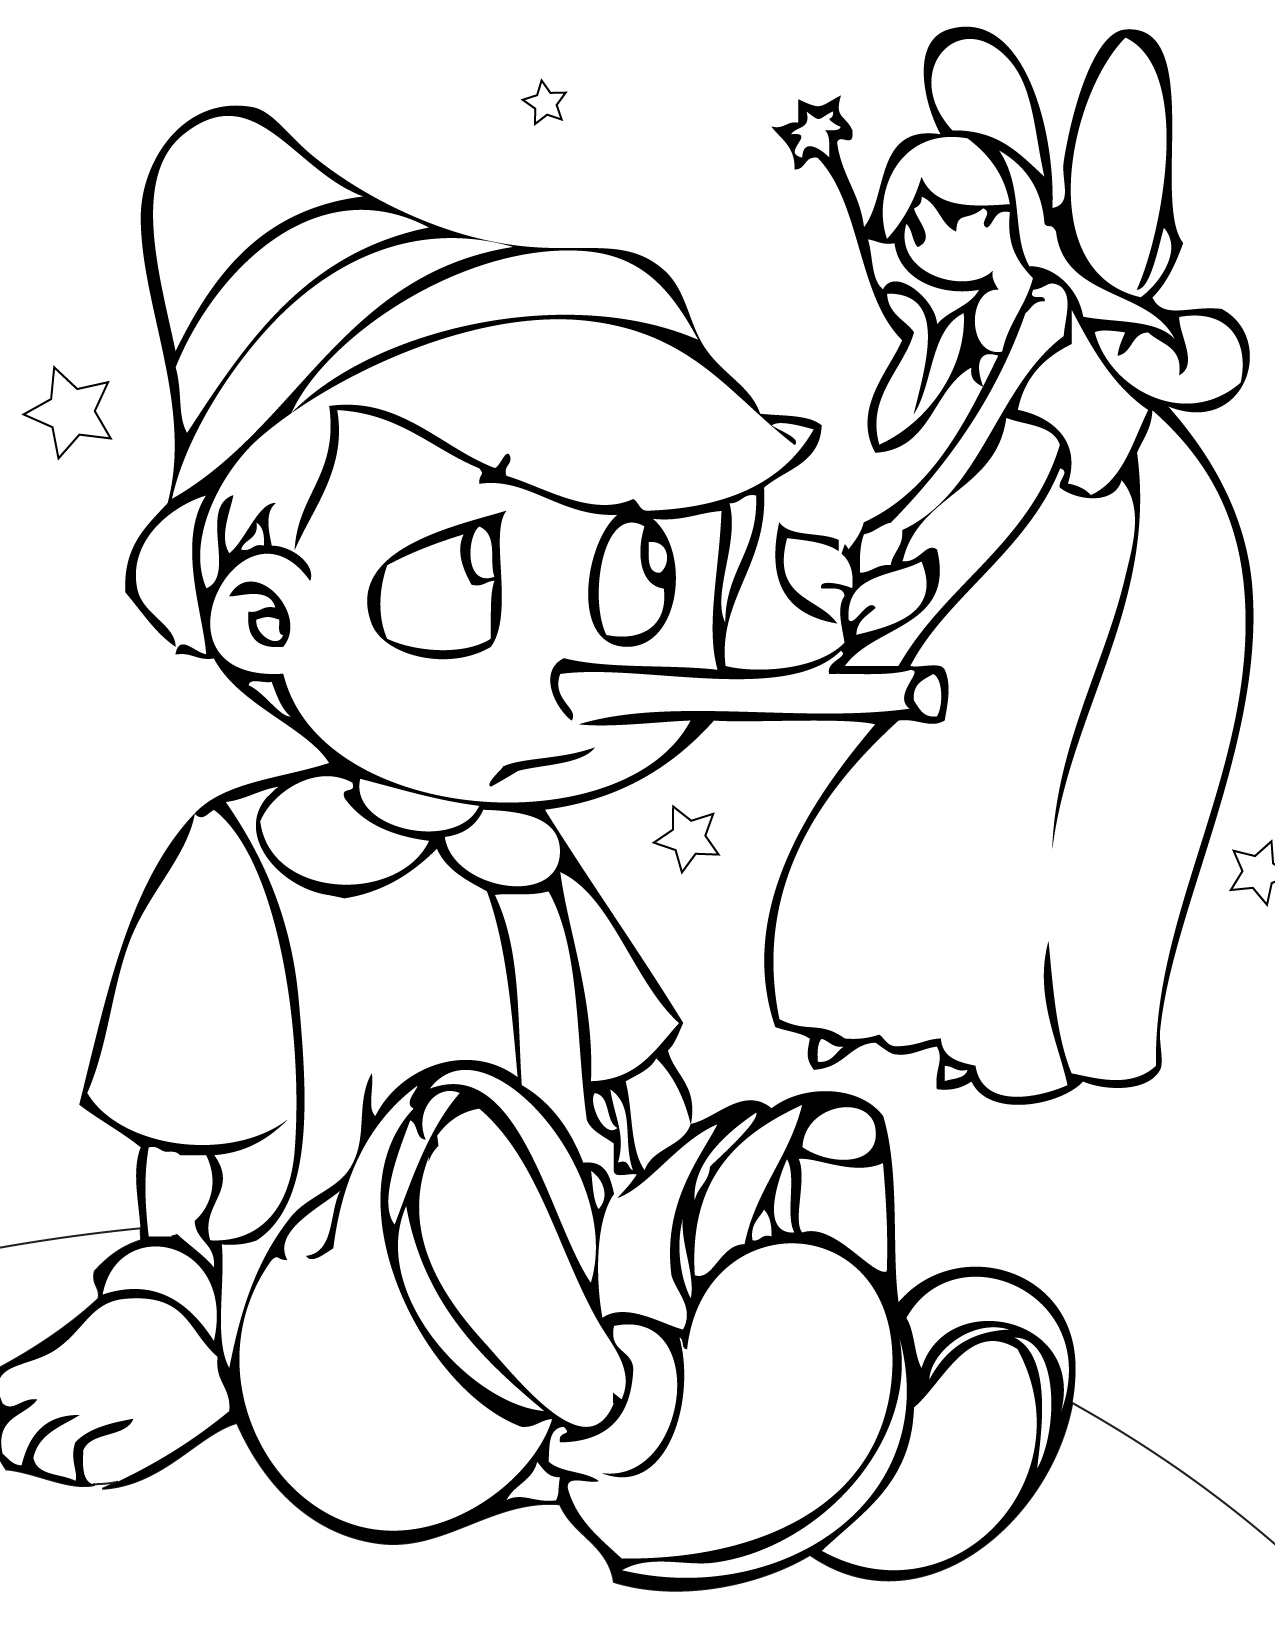 Free Printable Pinocchio Coloring Pages For Kids Free Children S Coloring Pages